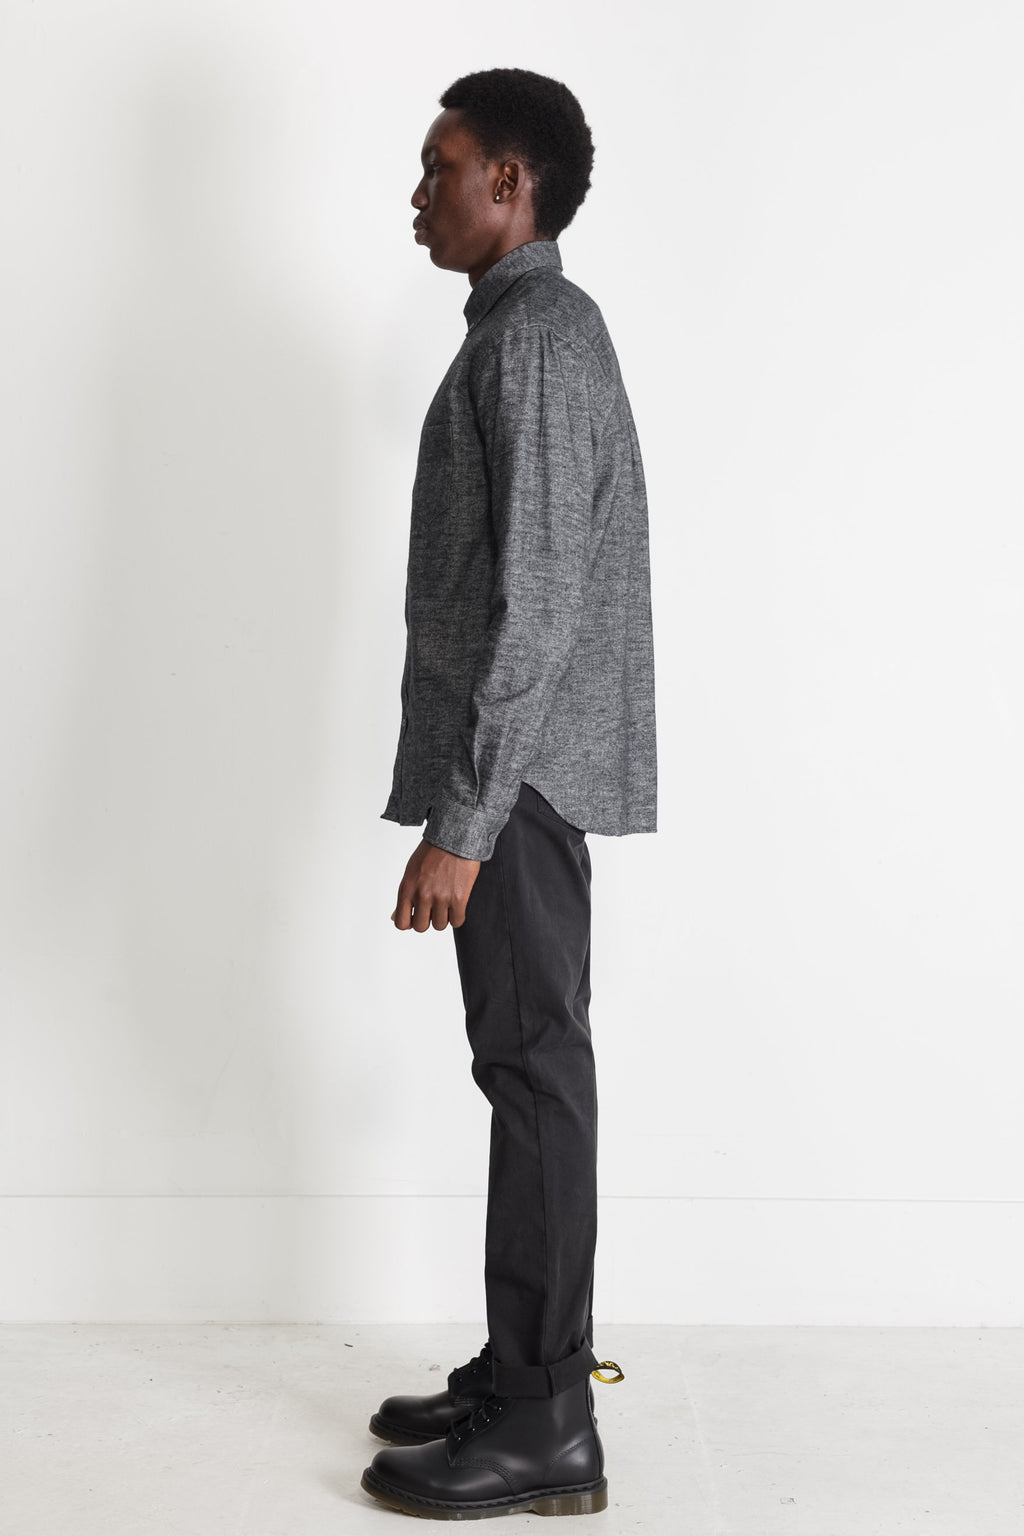 Japanese Brushed Twill Flannel in Black 03